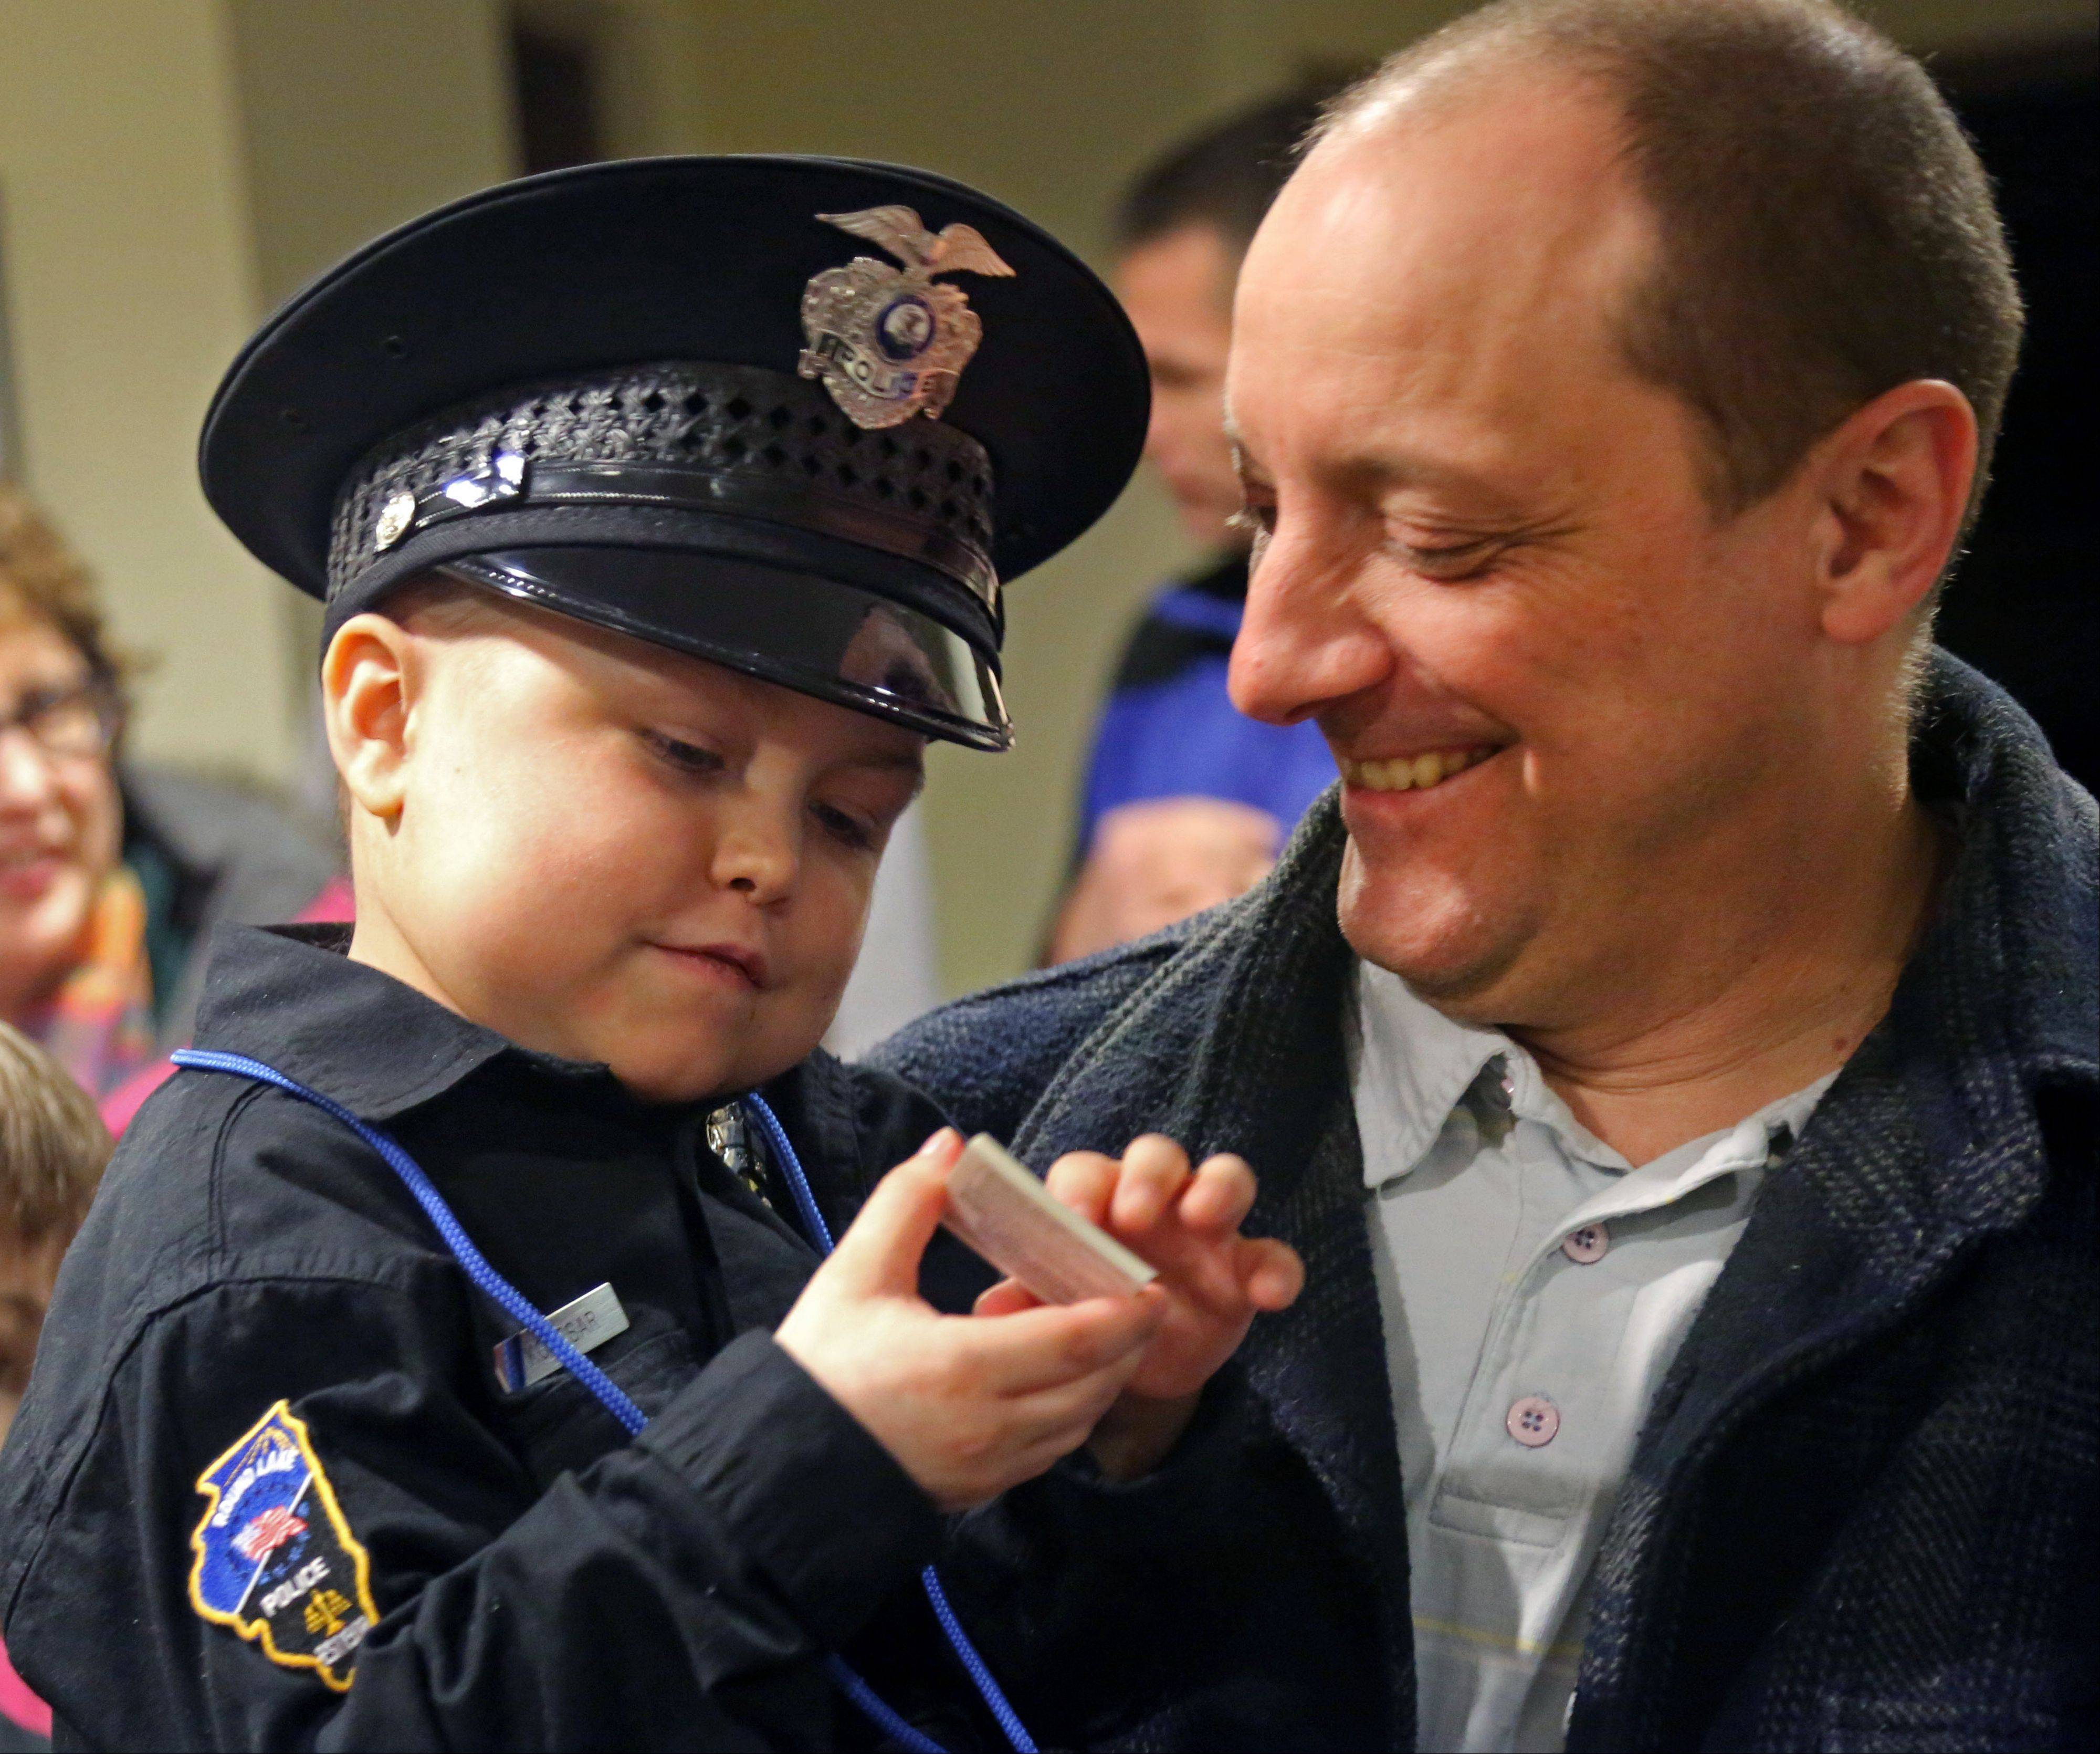 Six-year-old Jonah Kolesar of Round Lake is held by his father, Mitchell, after being sworn in Monday night as a junior reserve police officer during a ceremony at the Round Lake village board meeting. Jonah suffers from an autoimmune disease called IPEX Syndrome.